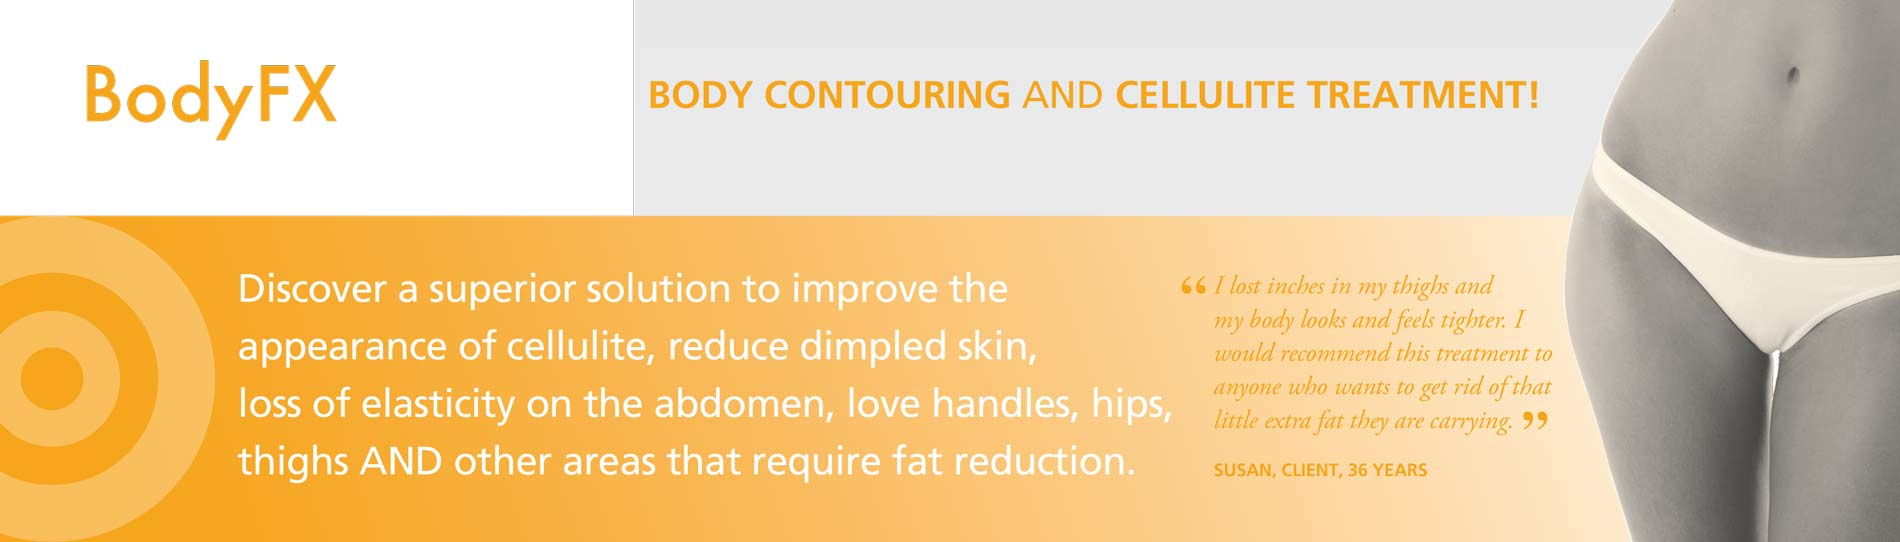 Body FX Contouring And Cellulite Treatment